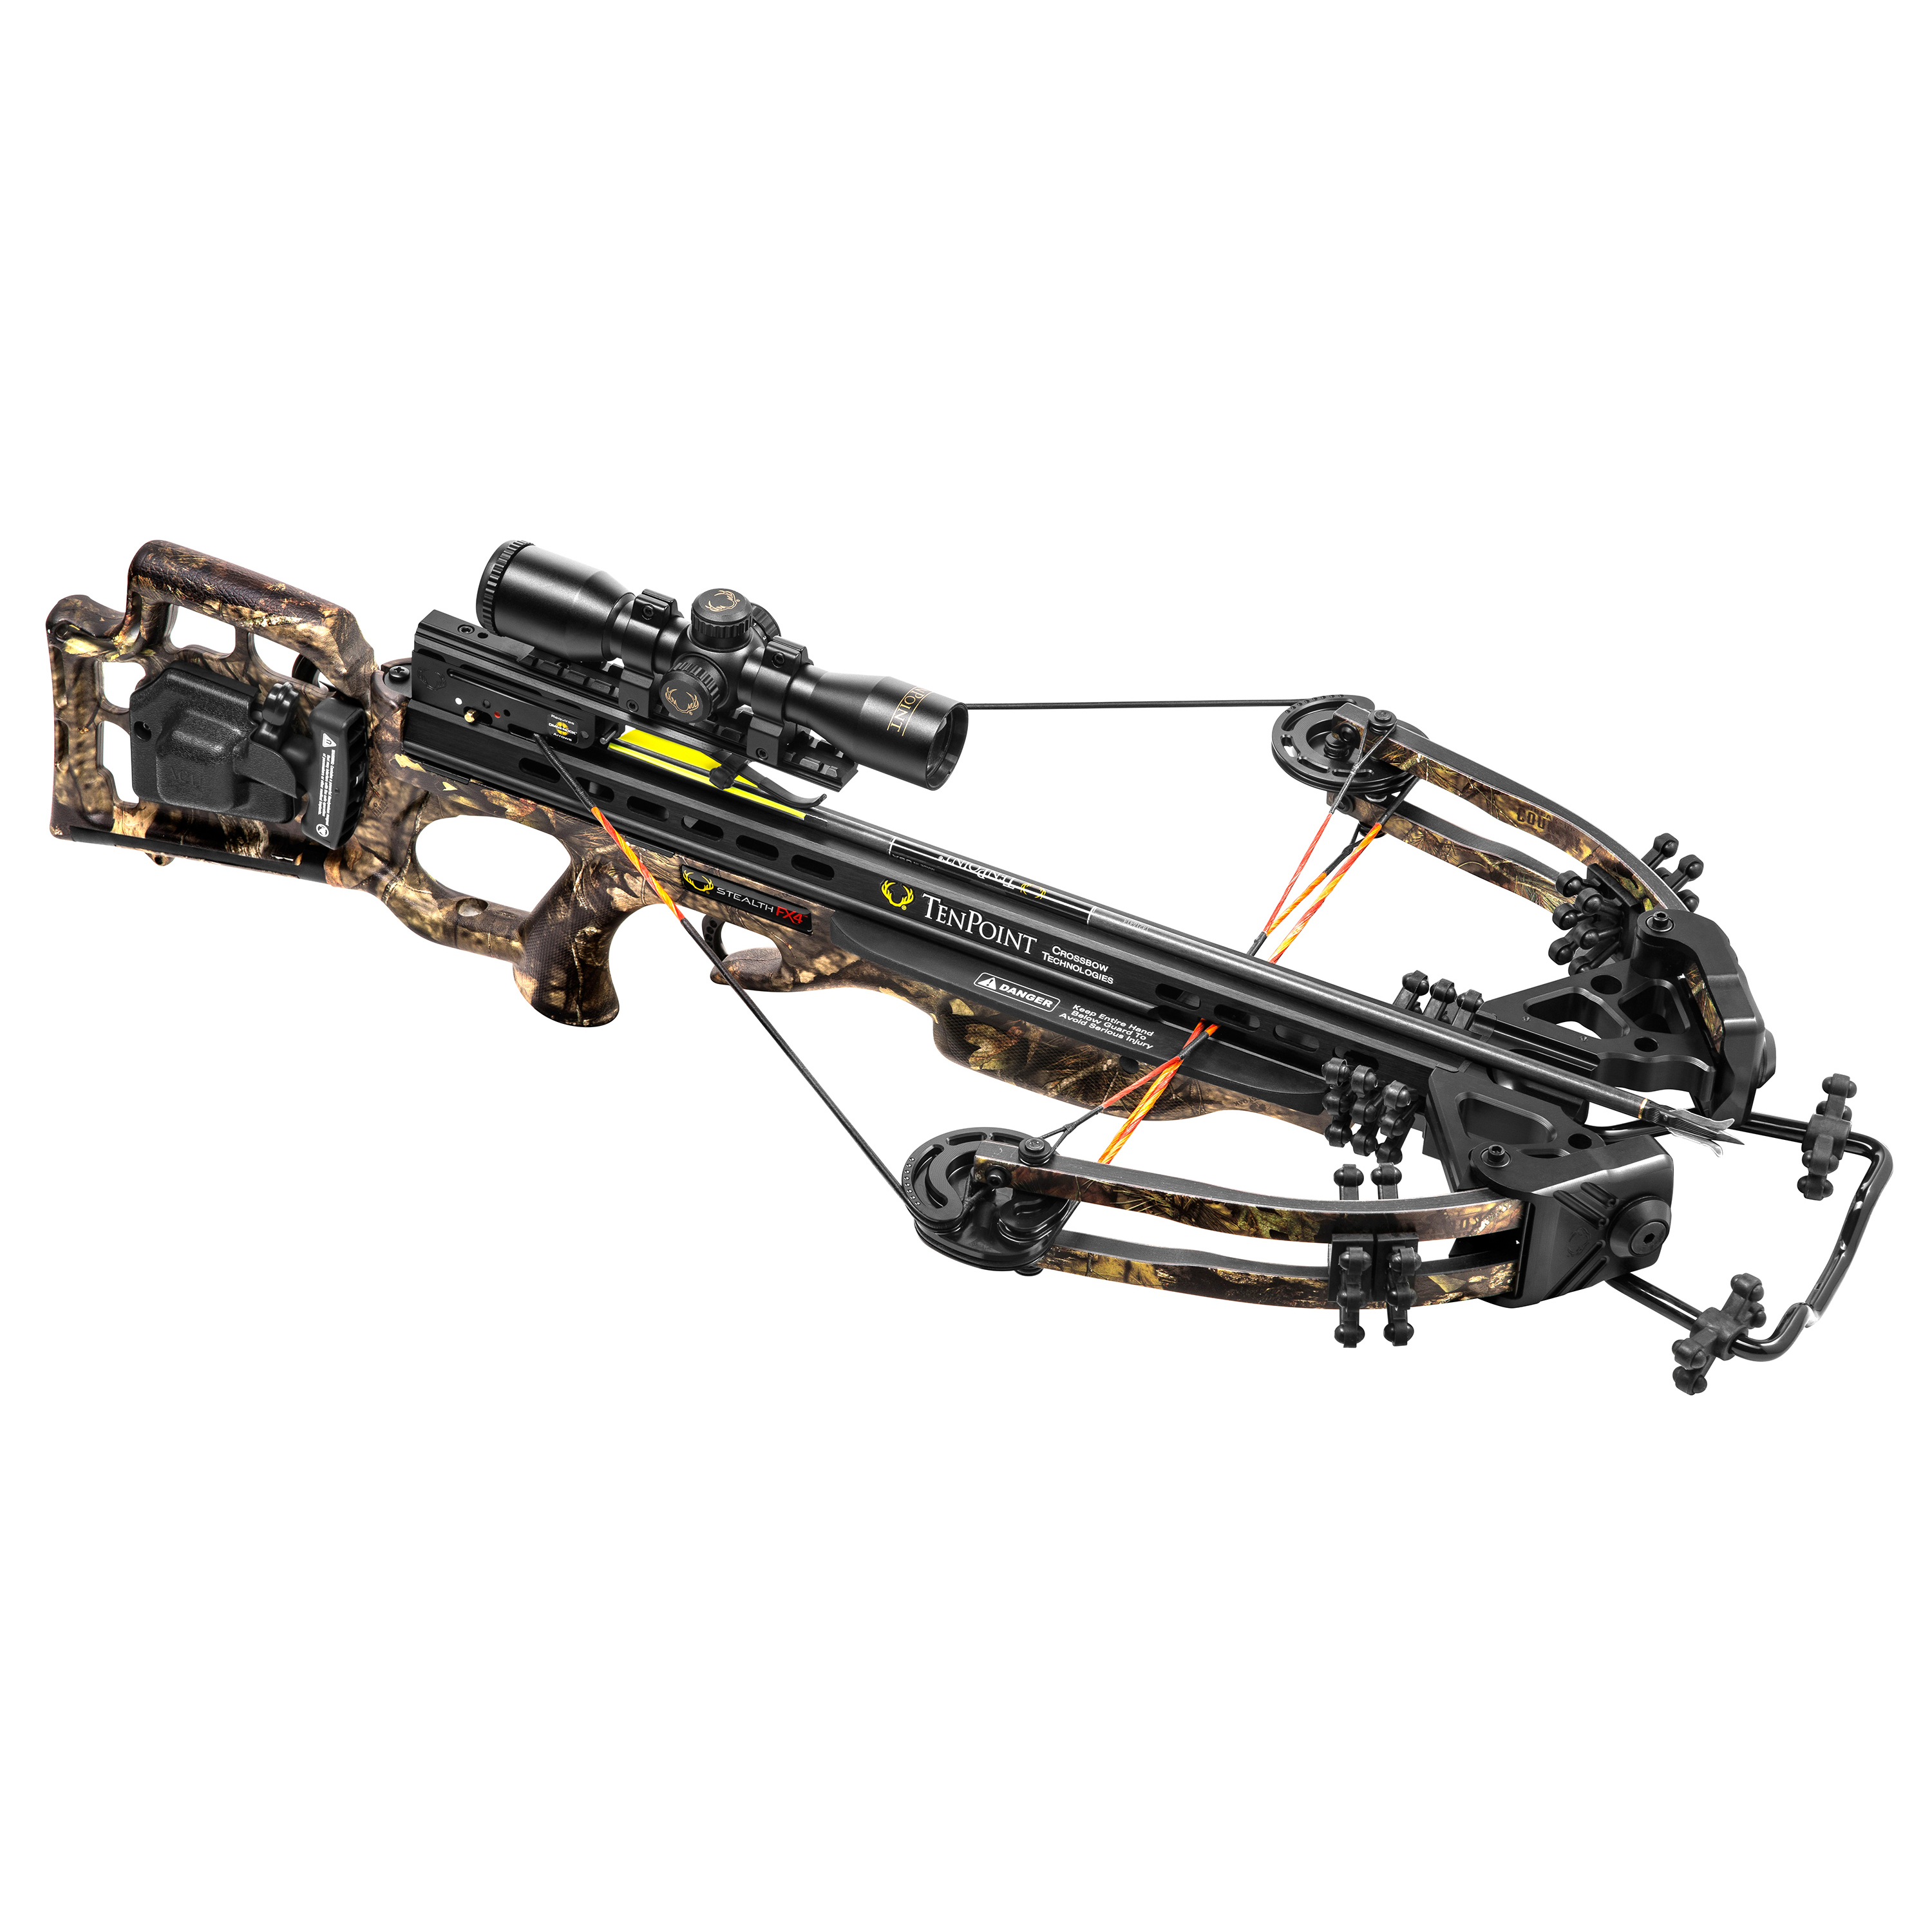 TenPoint Crossbow Technologies Stealth FX4 Crossbow w/ACU-Draw 50 Pkg, Camo